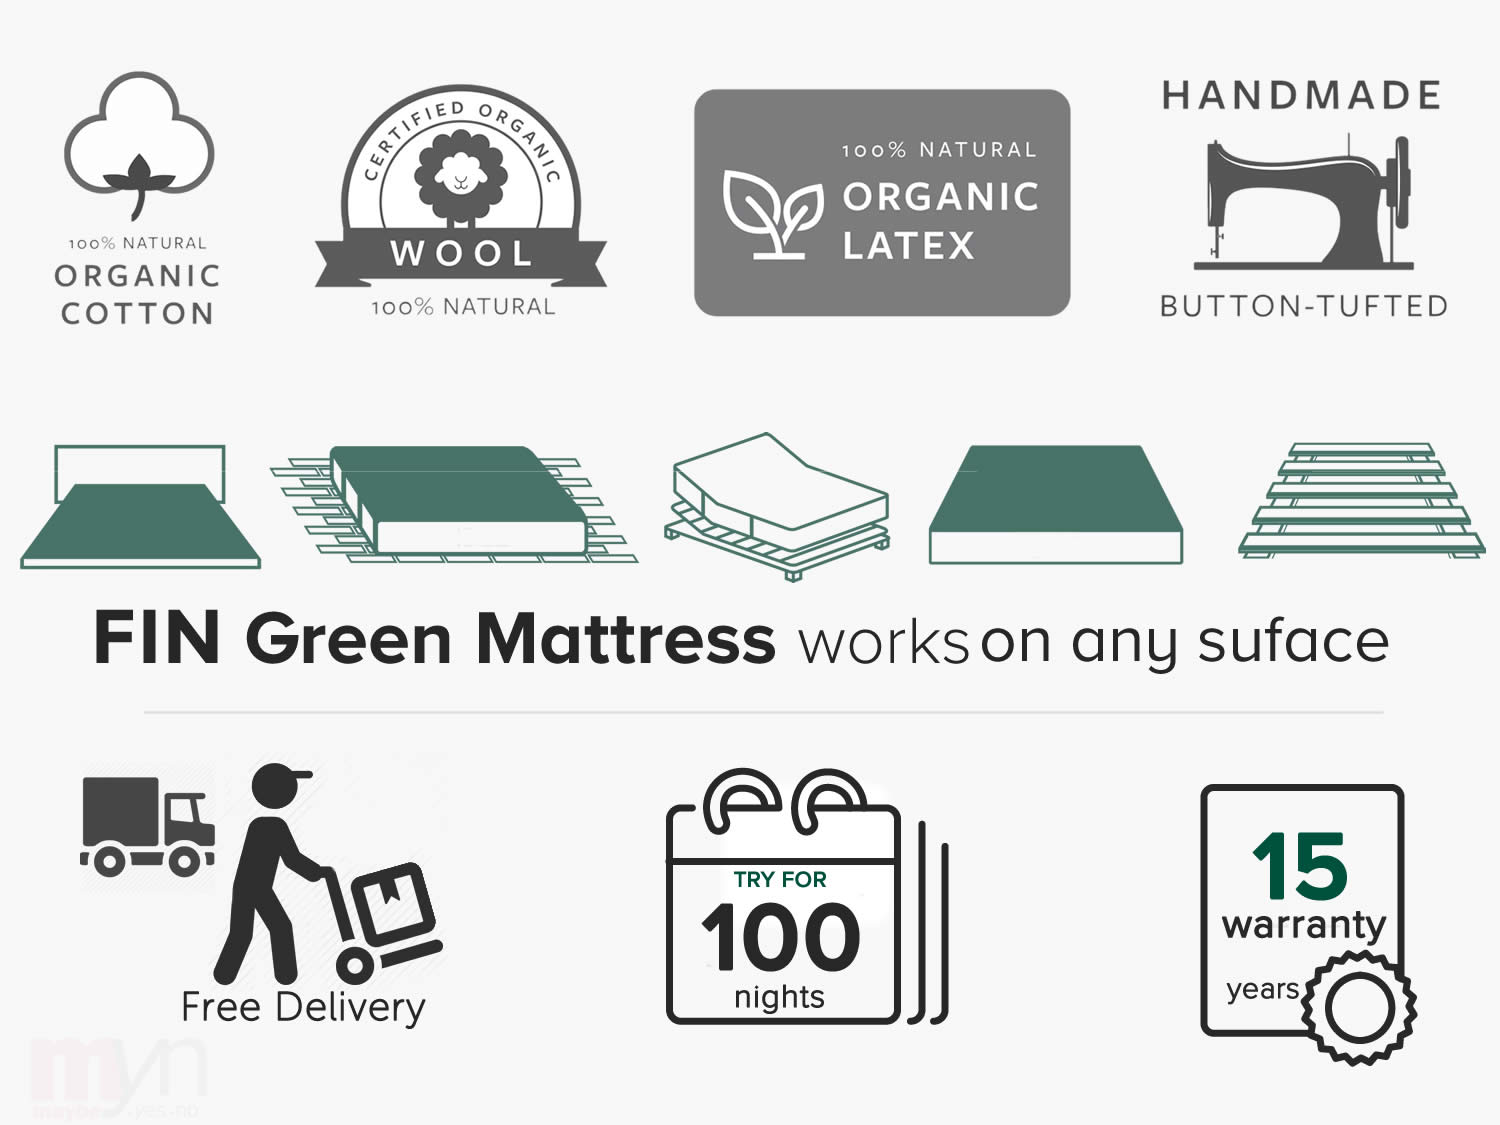 FIN Green Mattress comes with Free Delivery, 100 night trial, any reason replacement guarantee, a 15 year warranty